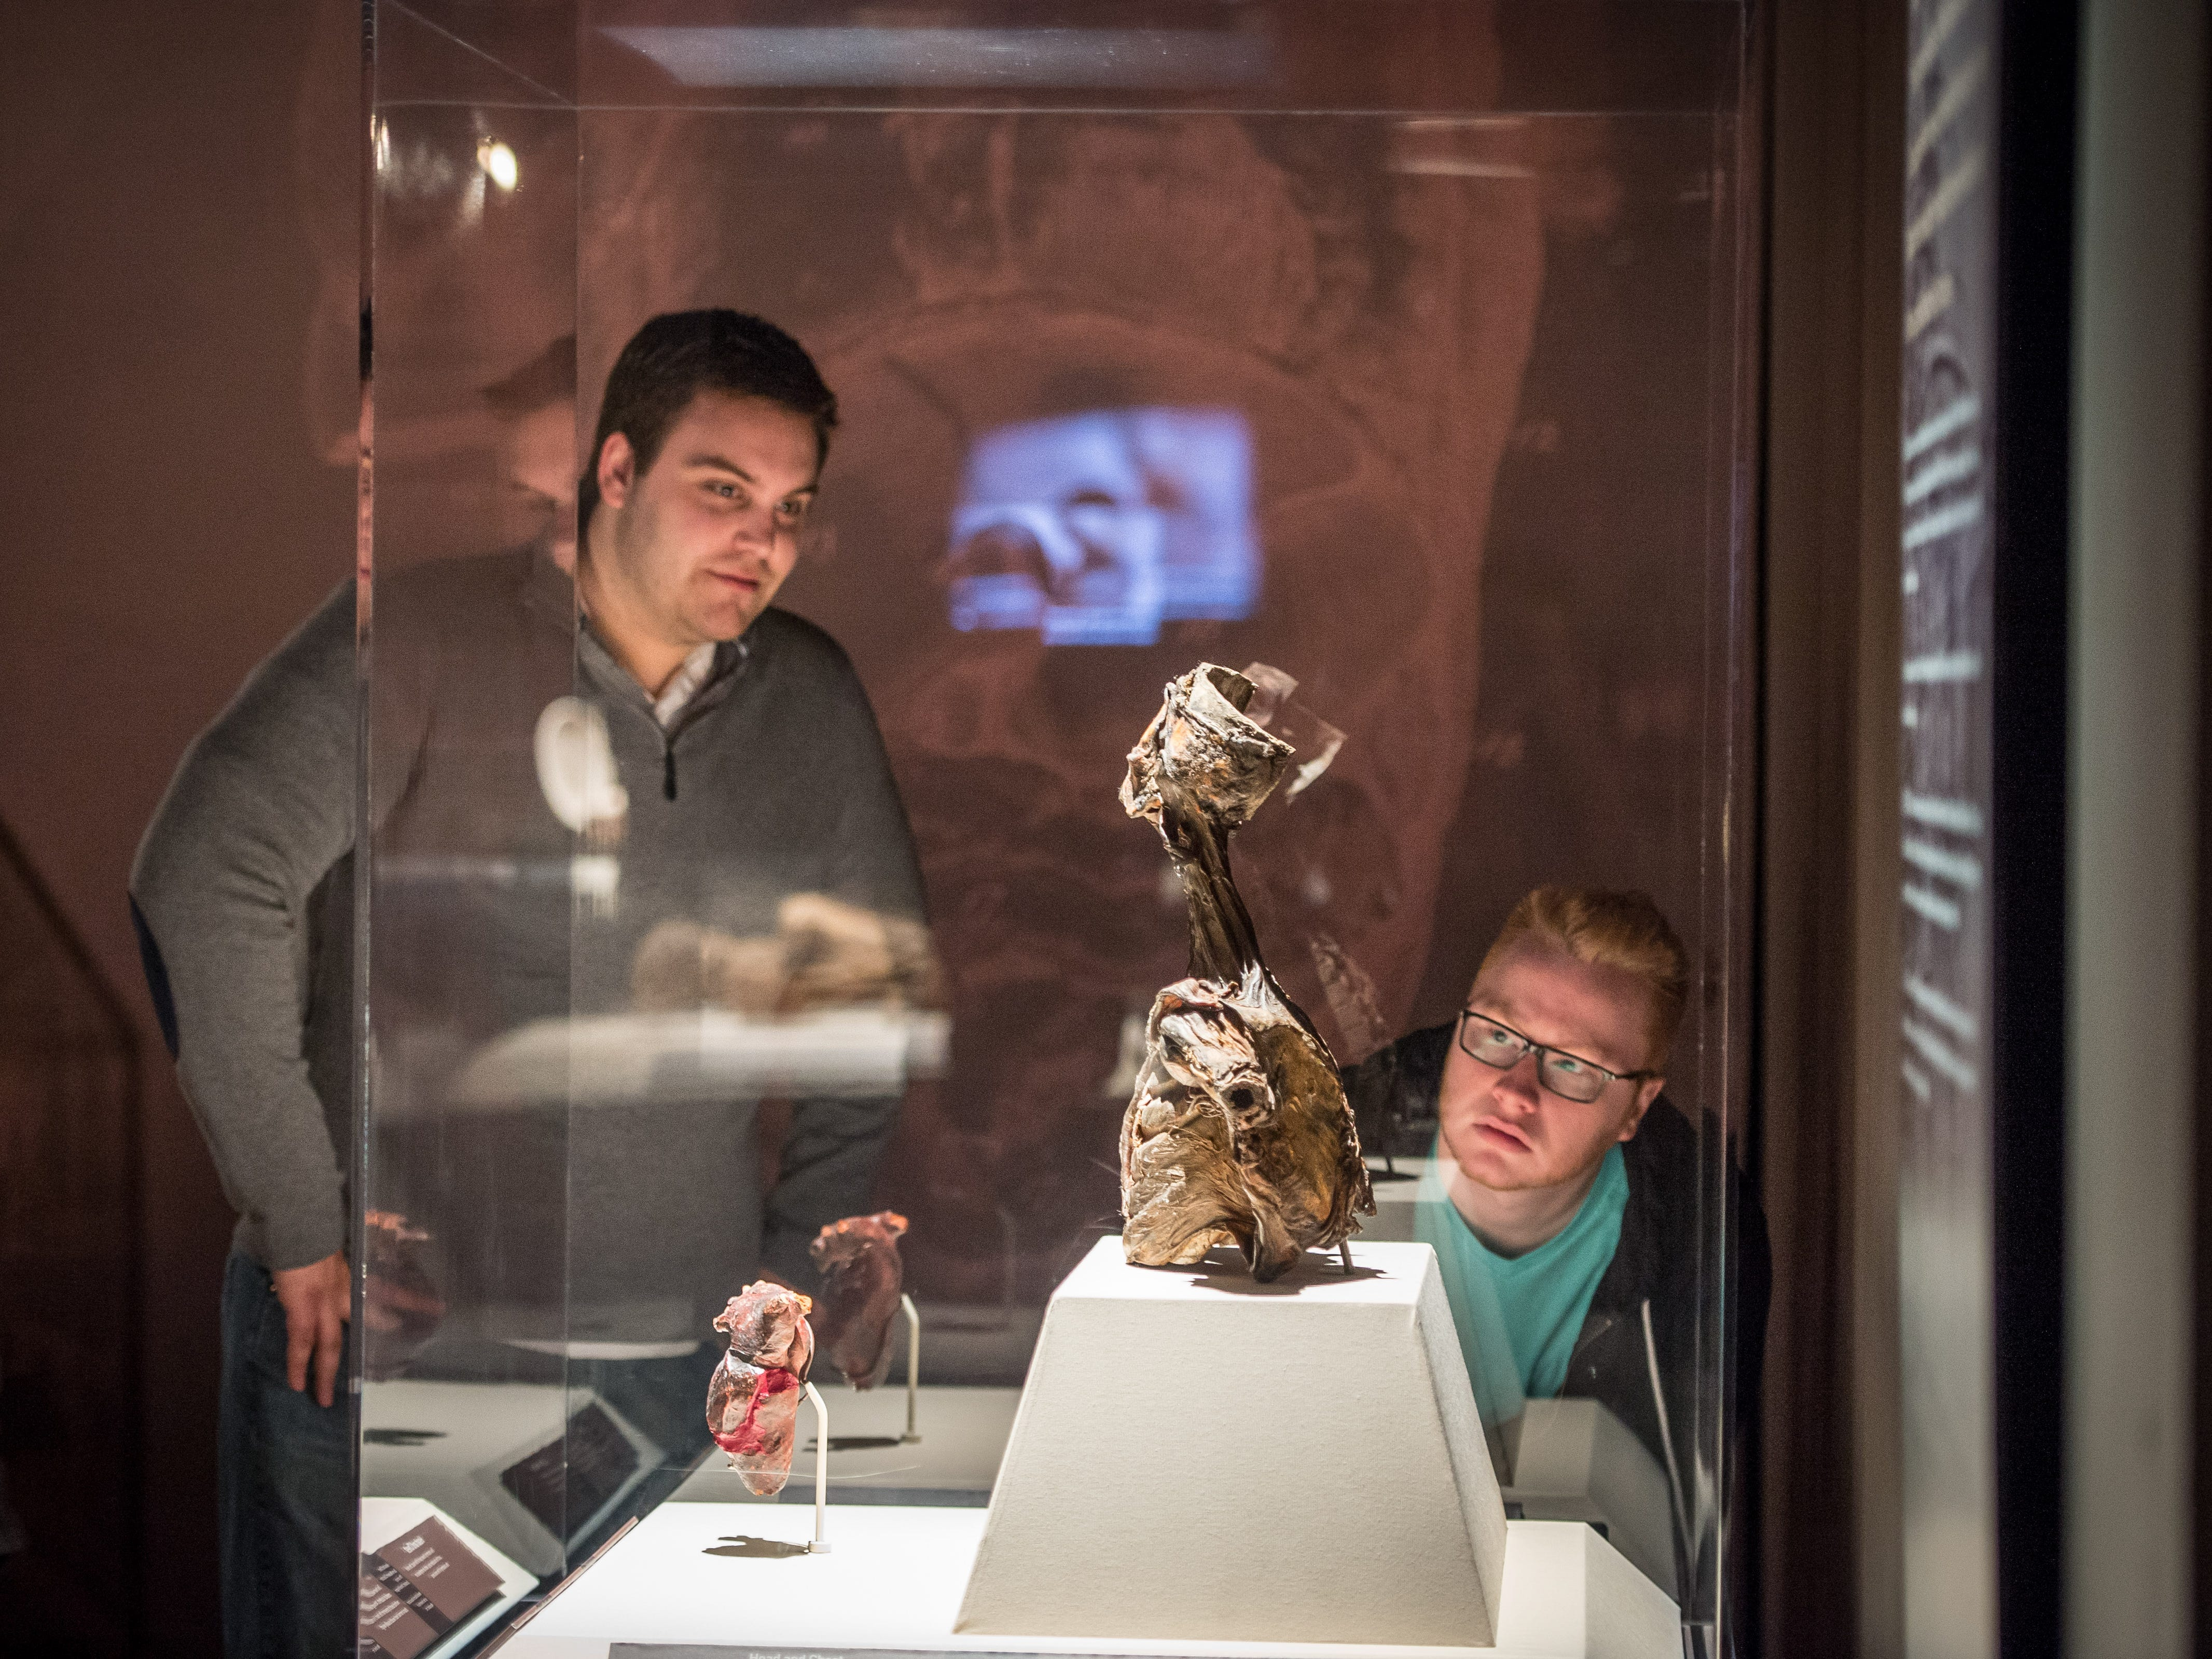 Onlookers admire the Burns Collection as they make their way through the Mummies of the World: The Exhibition display at the Arizona Science Center.